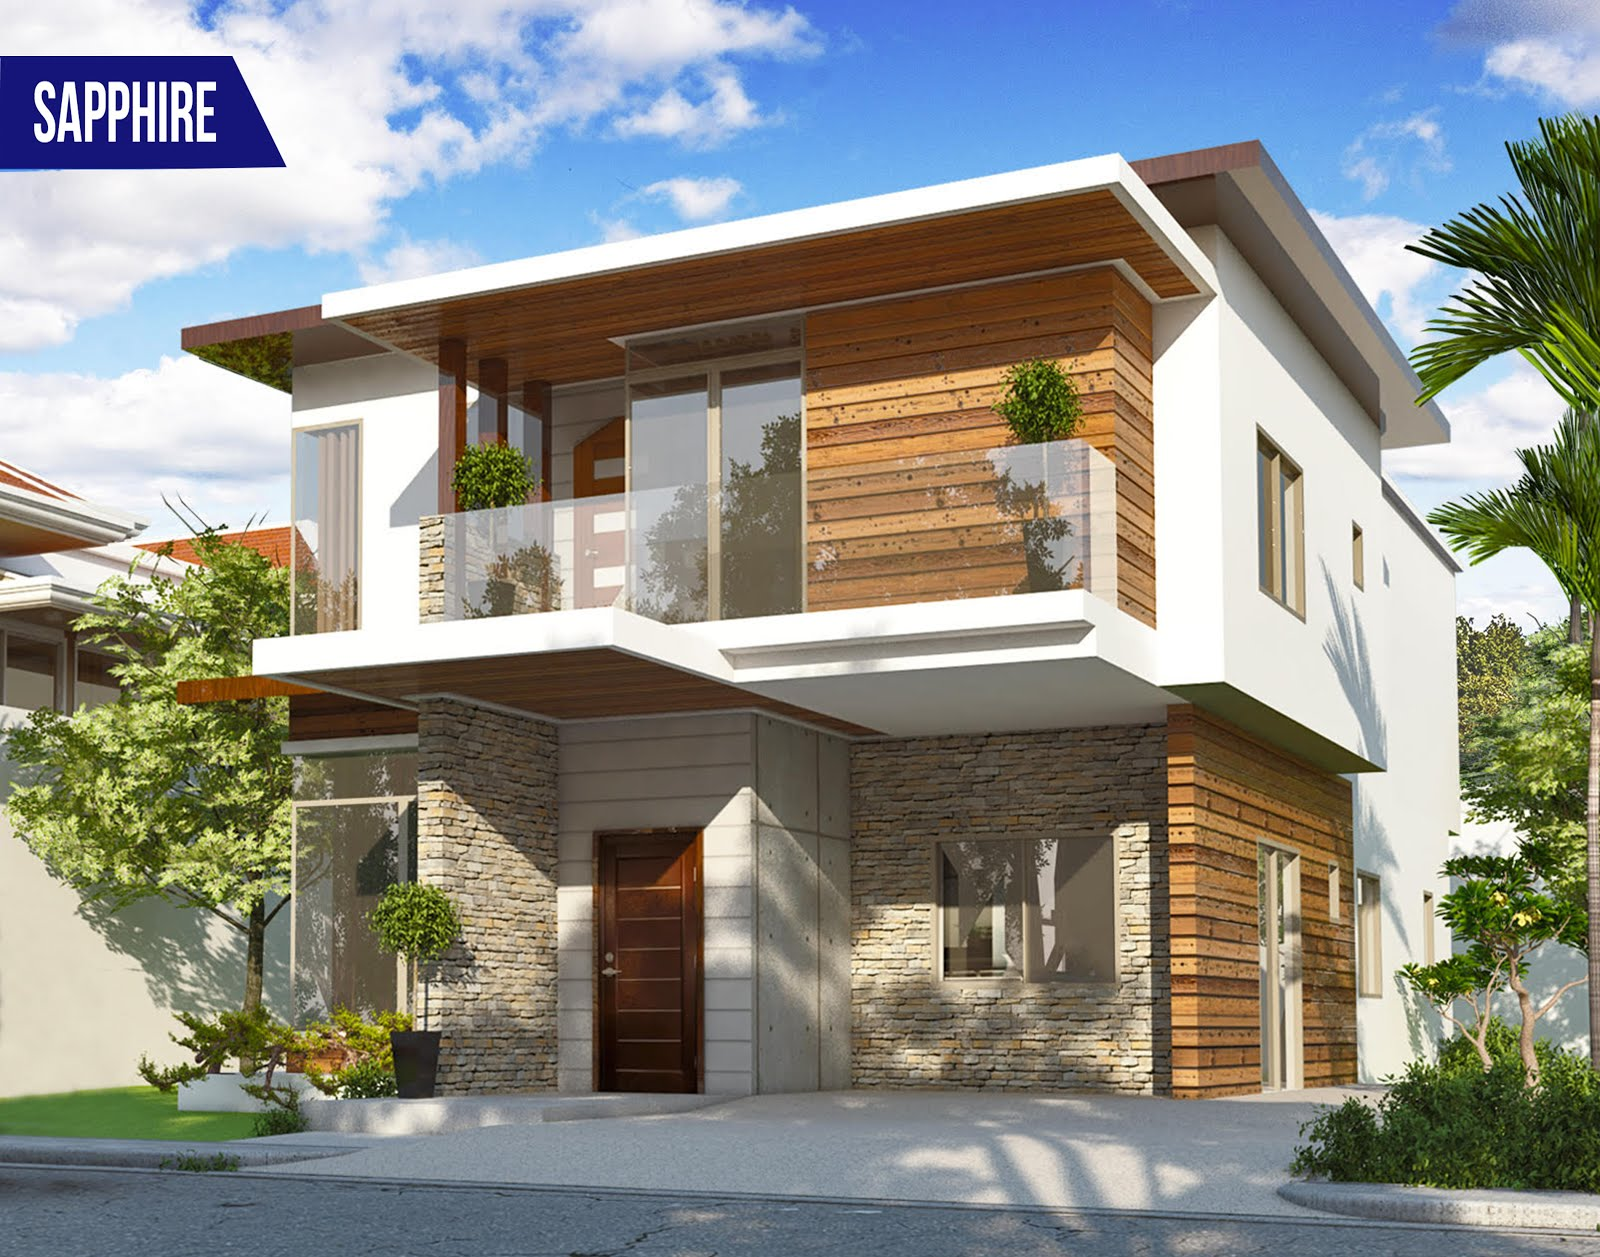 A smart philippine house builder the basics of latest for House model design photos